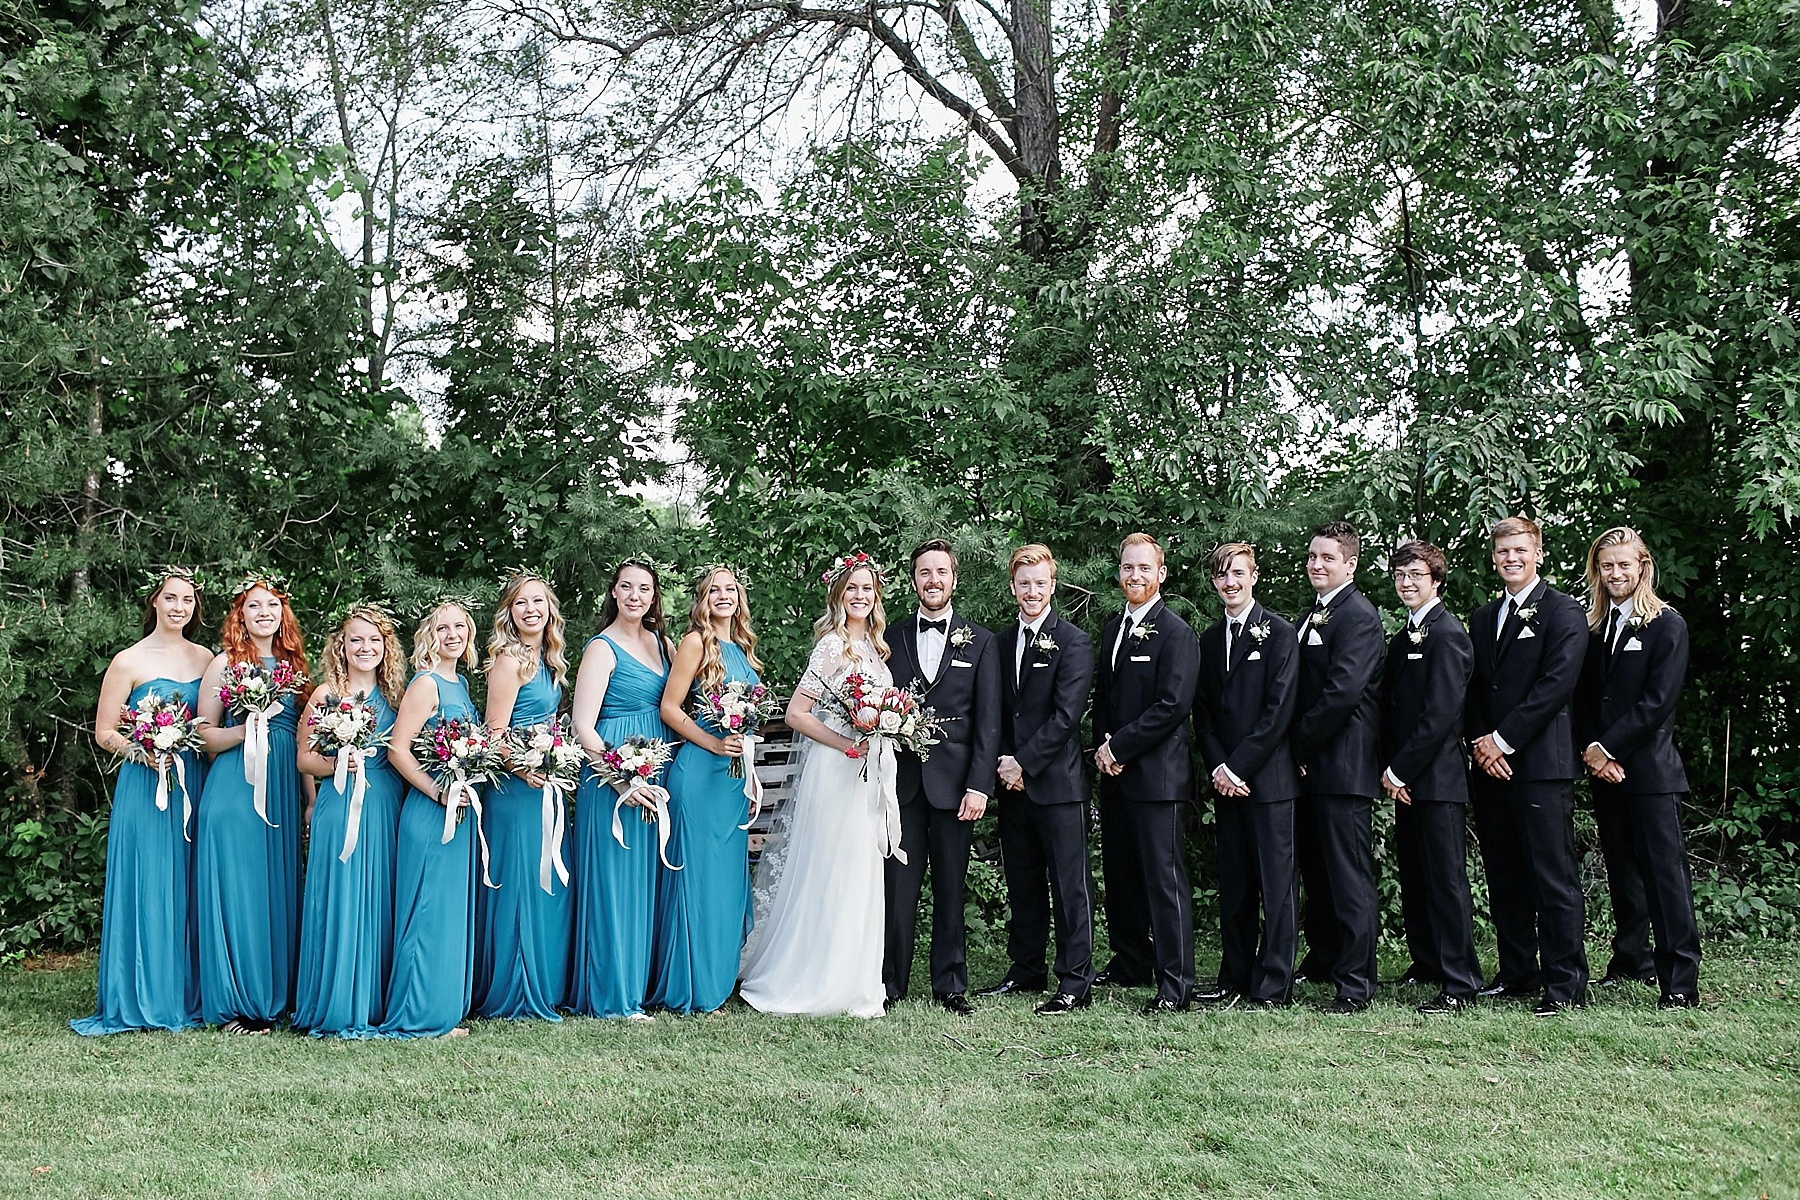 Fairhaven-Farm-South-Haven-Minnesota-Barn-Outdoor-Wedding-Josh-Kailey_0965.jpg